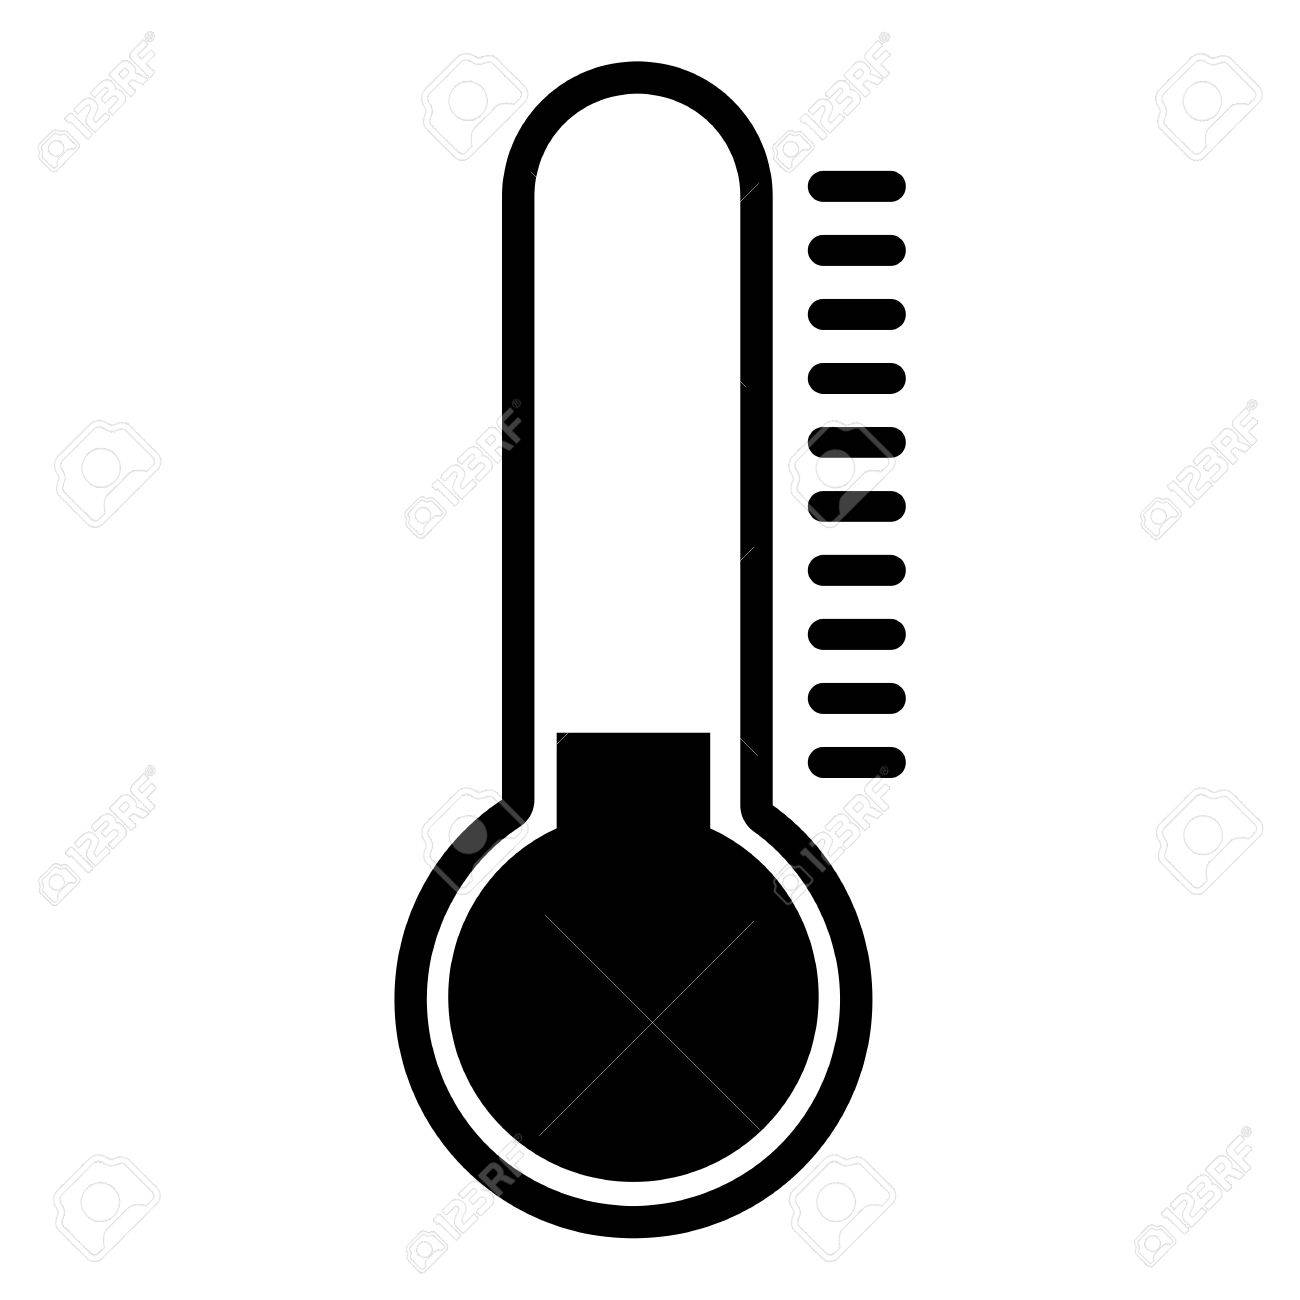 Thermometer Clipart Black And White